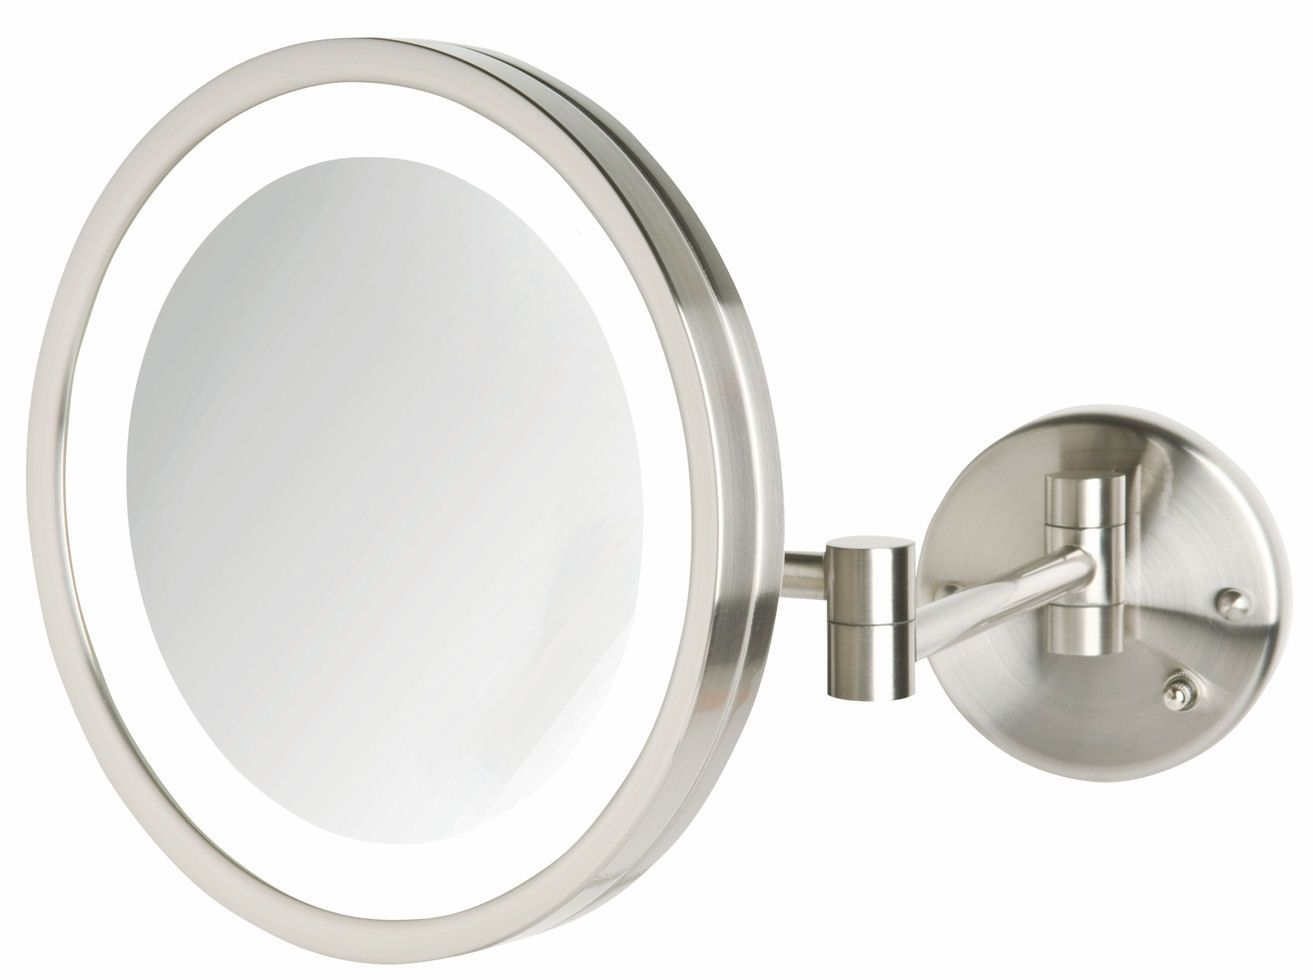 Wall Mounted Lighted Magnifying Mirror 10x The Mount Is Easier Method To Produce Plasma And Lcd Television Sets